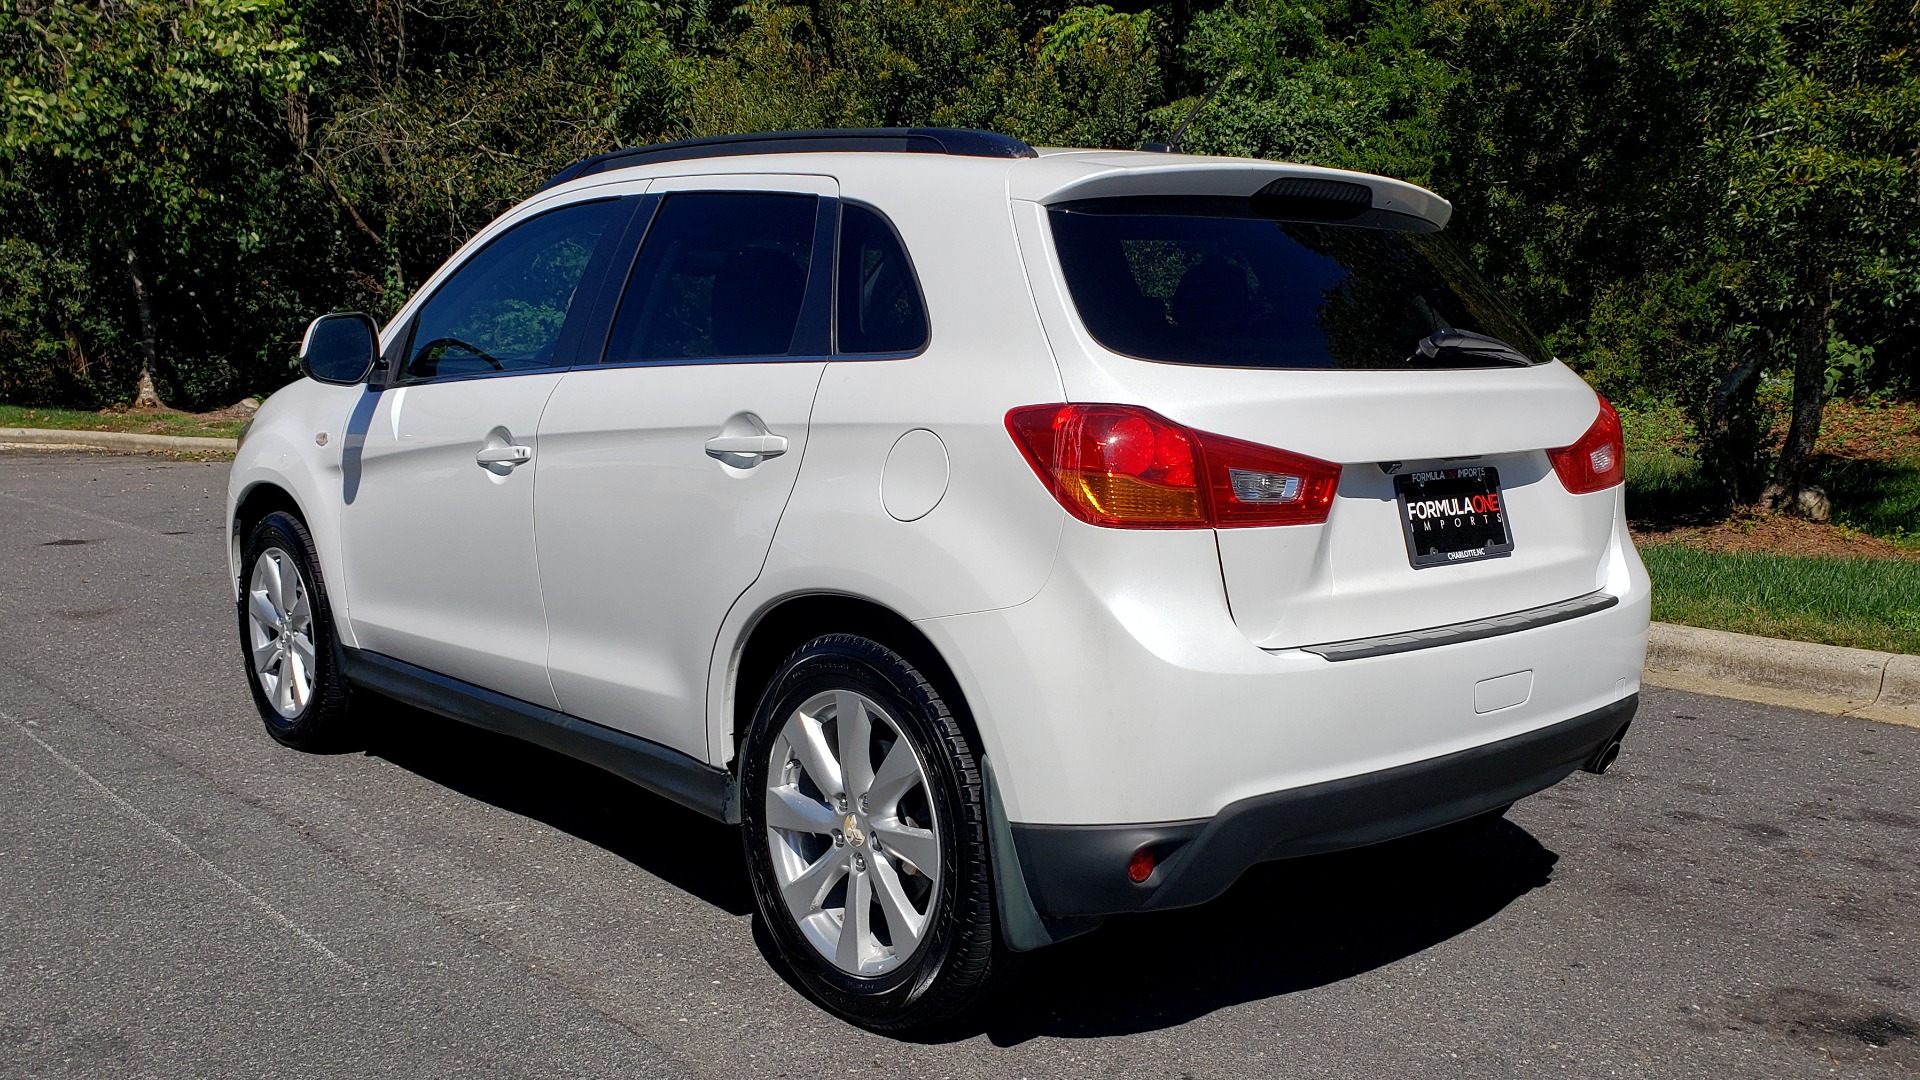 Used 2013 Mitsubishi OUTLANDER SPORT SE / 2WD / 4-DR SUV / CVT TRANS / PREMIUM SOUND / REARVIEW for sale $8,695 at Formula Imports in Charlotte NC 28227 3